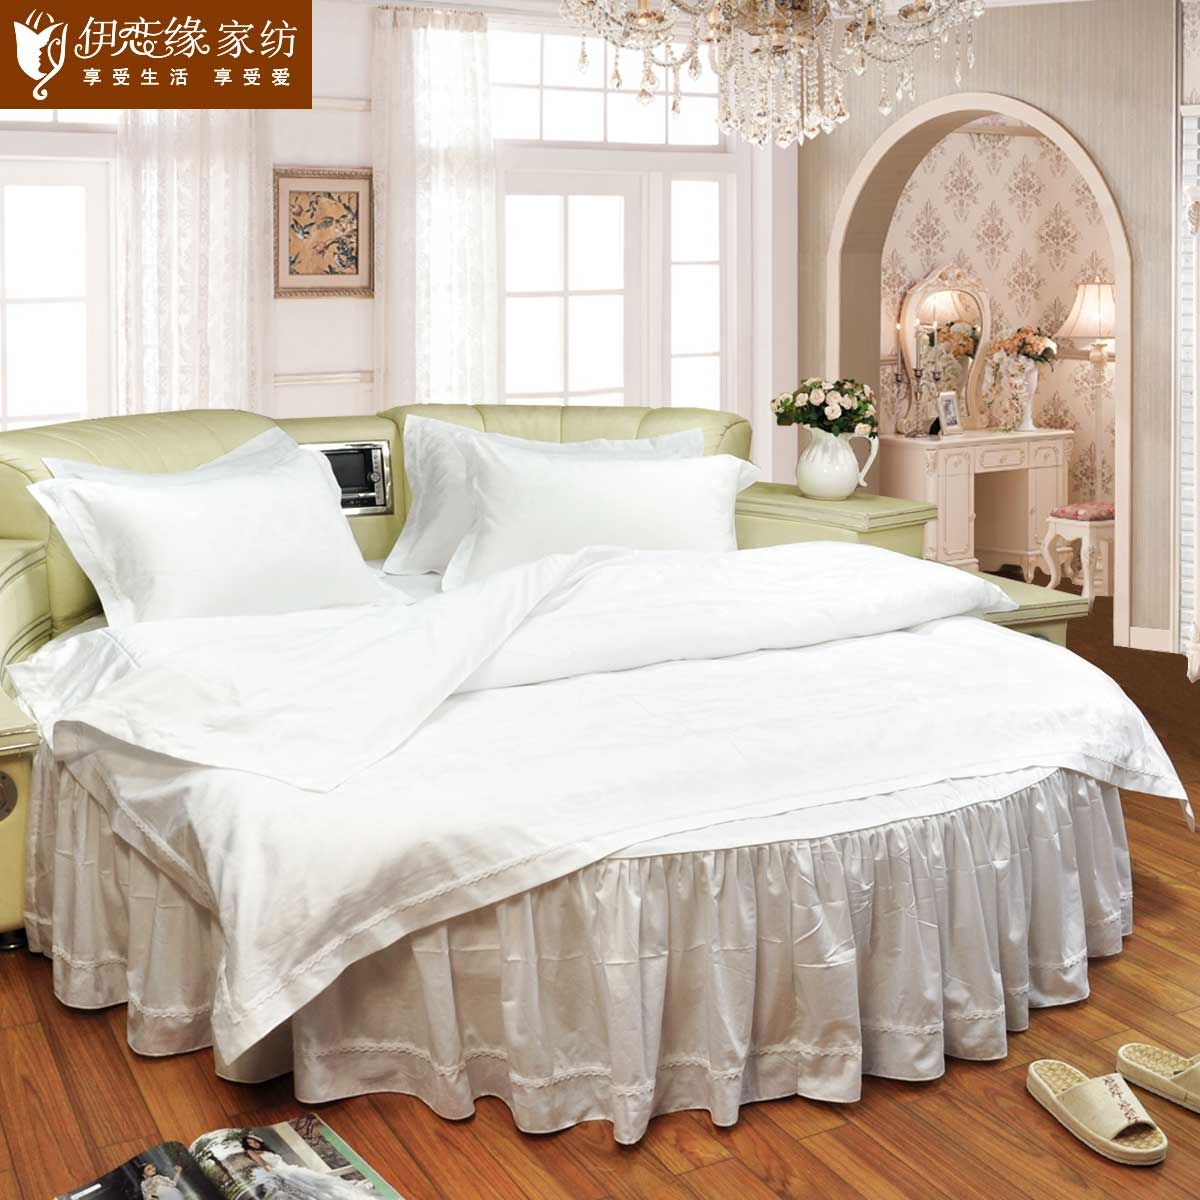 Love iraqi edge cotton satin lace round round bed bedding bedspread family of four hotels royal style